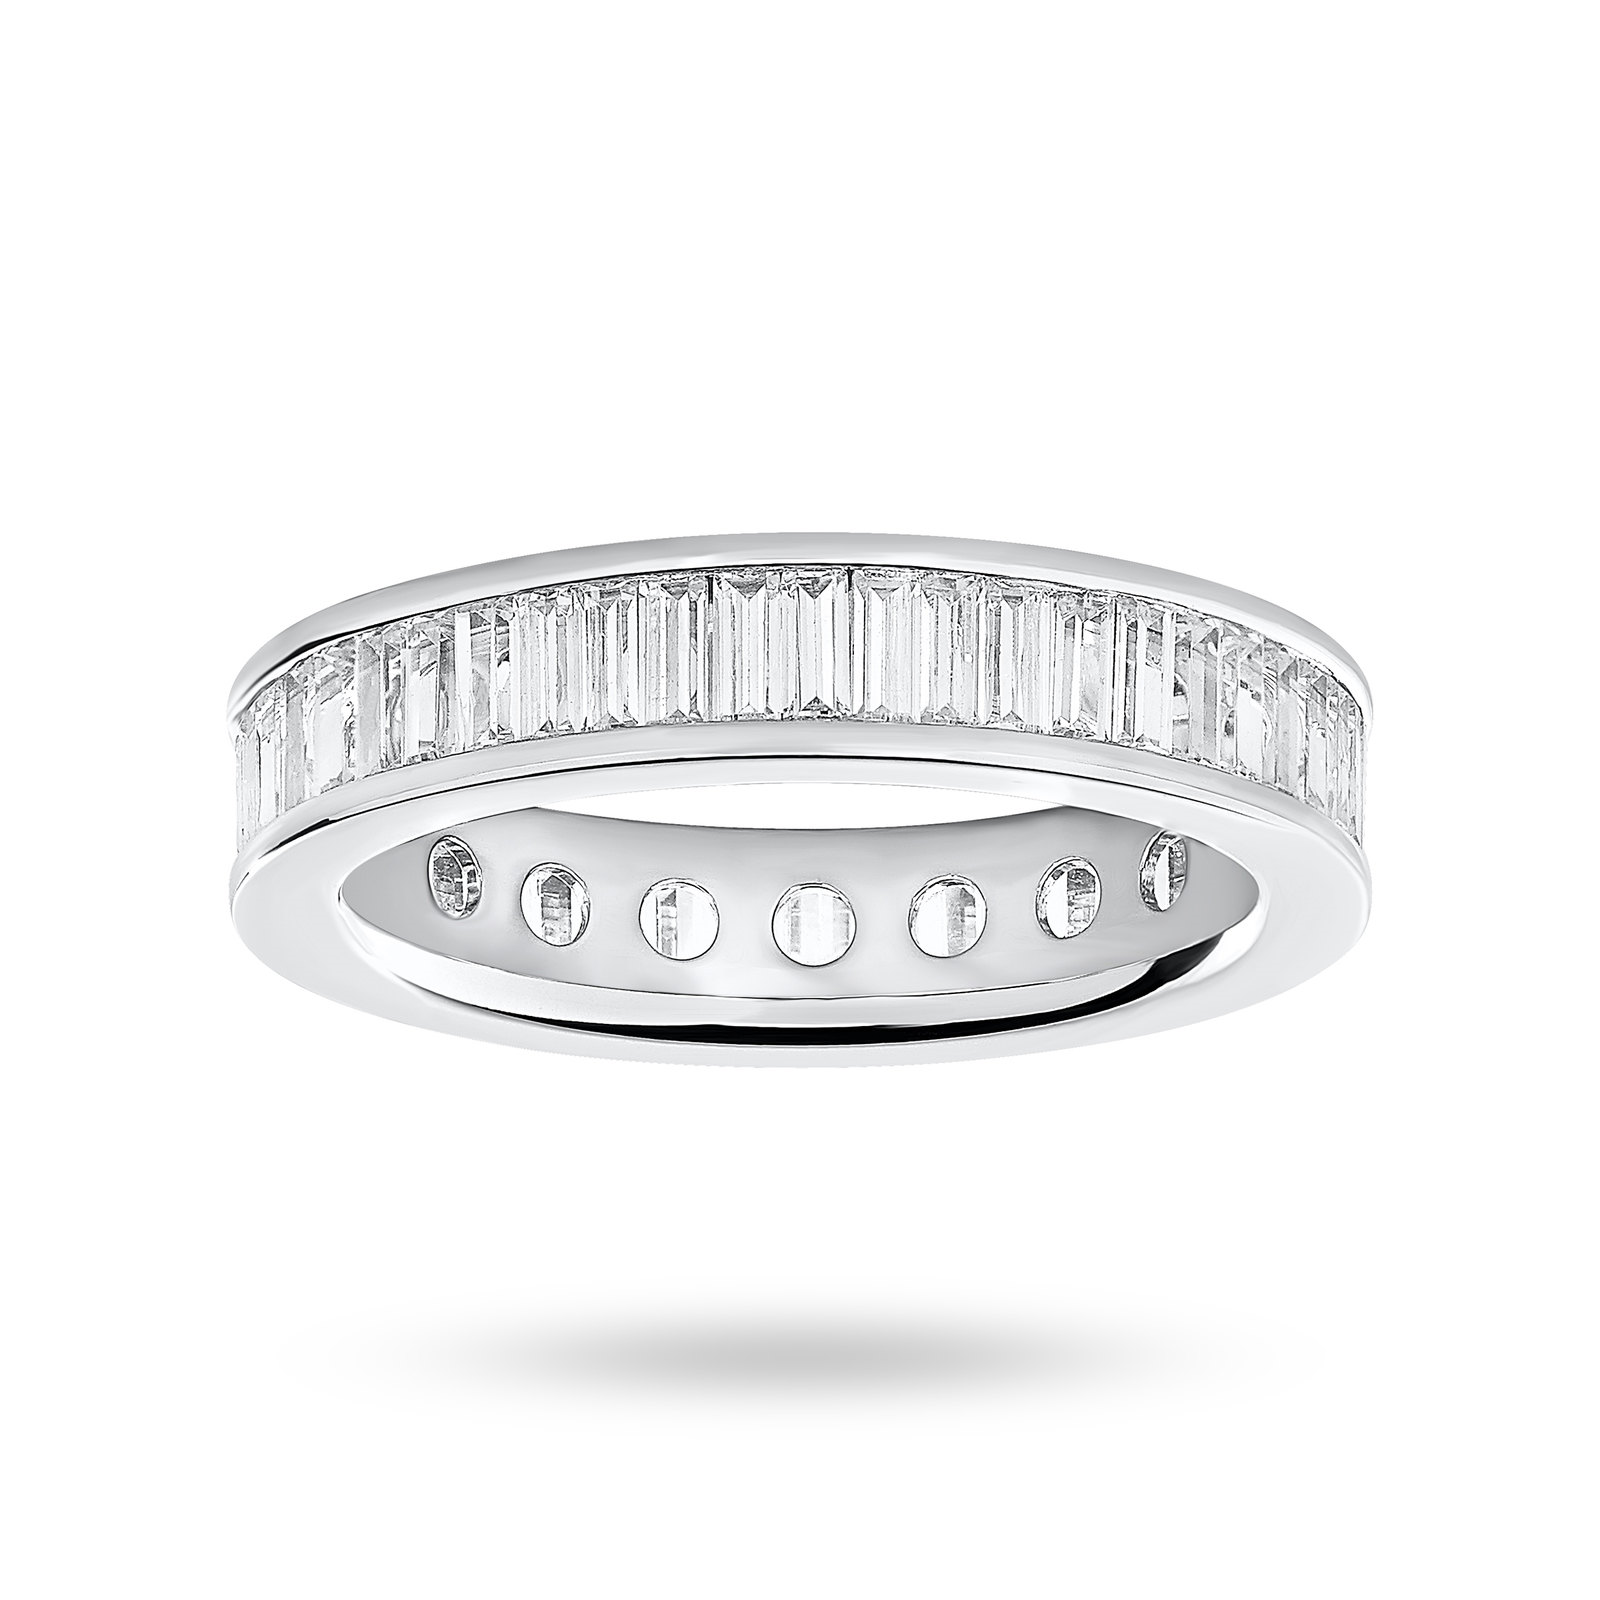 18ct White Gold 2.00ct Baguette Cut Full Eternity Ring - Ring Size K